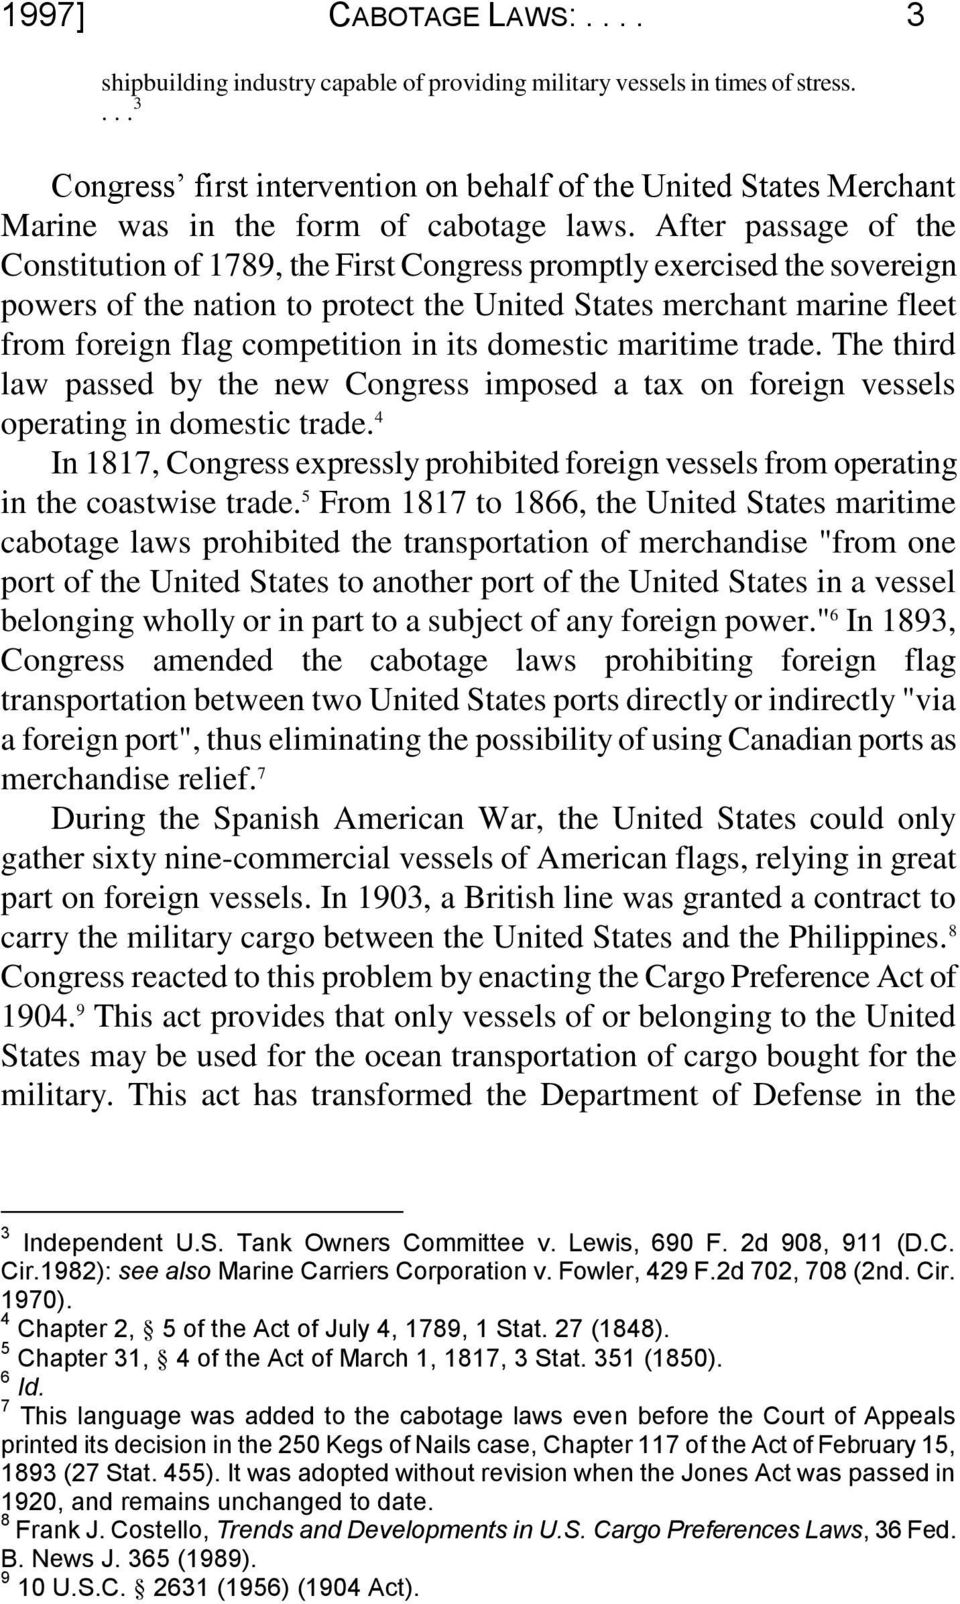 After passage of the Constitution of 1789, the First Congress promptly exercised the sovereign powers of the nation to protect the United States merchant marine fleet from foreign flag competition in